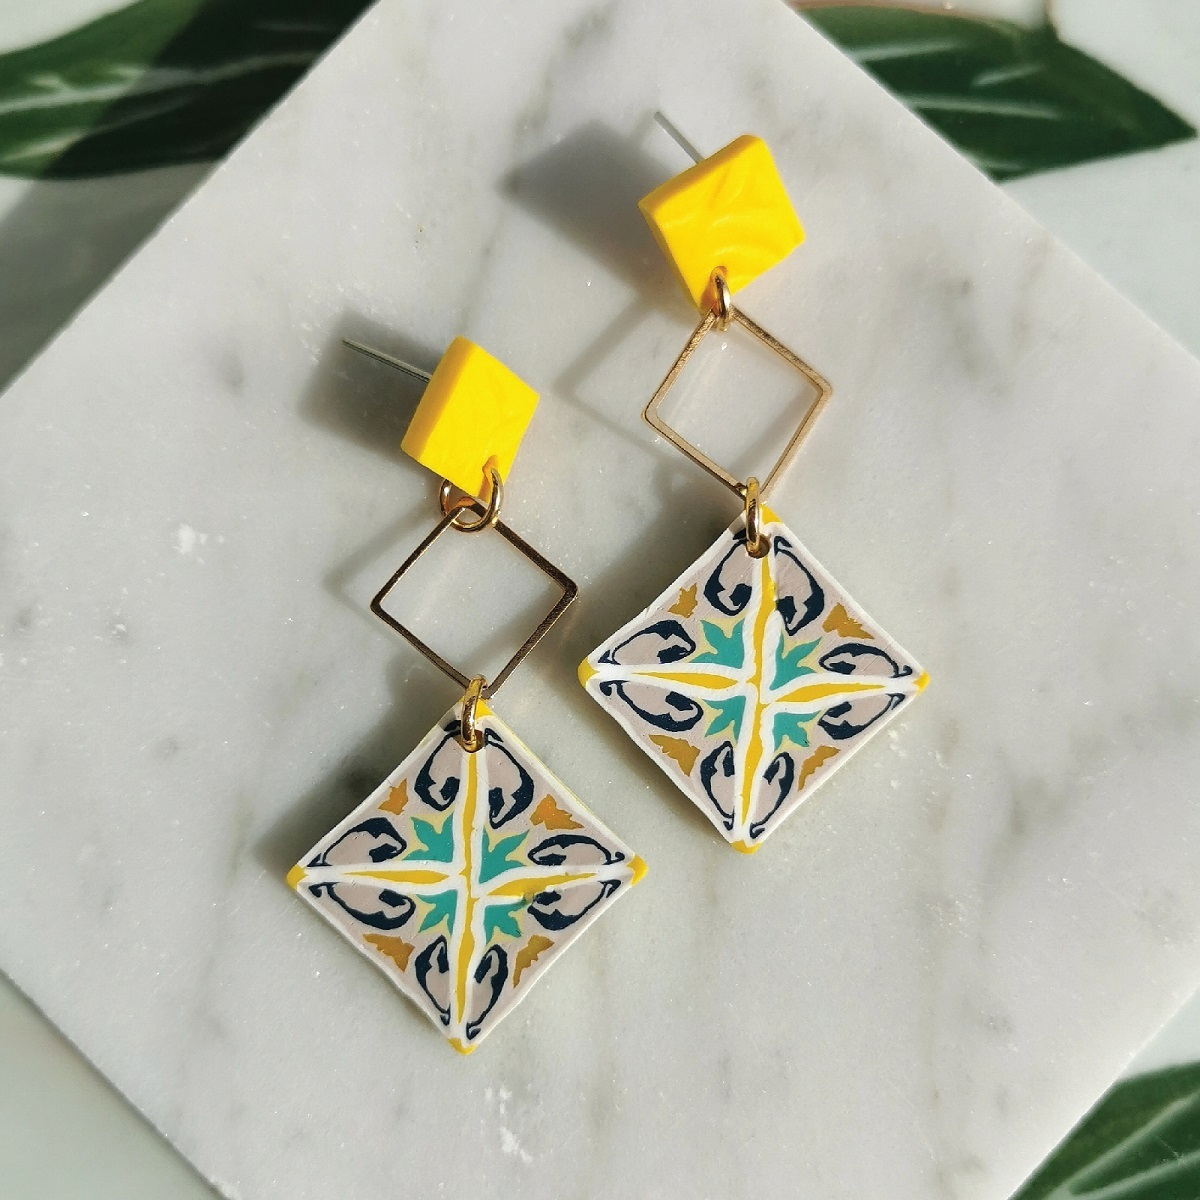 Item 2 - Either _ Or Design Heritage Yellow Three-tier Earrings.jpg